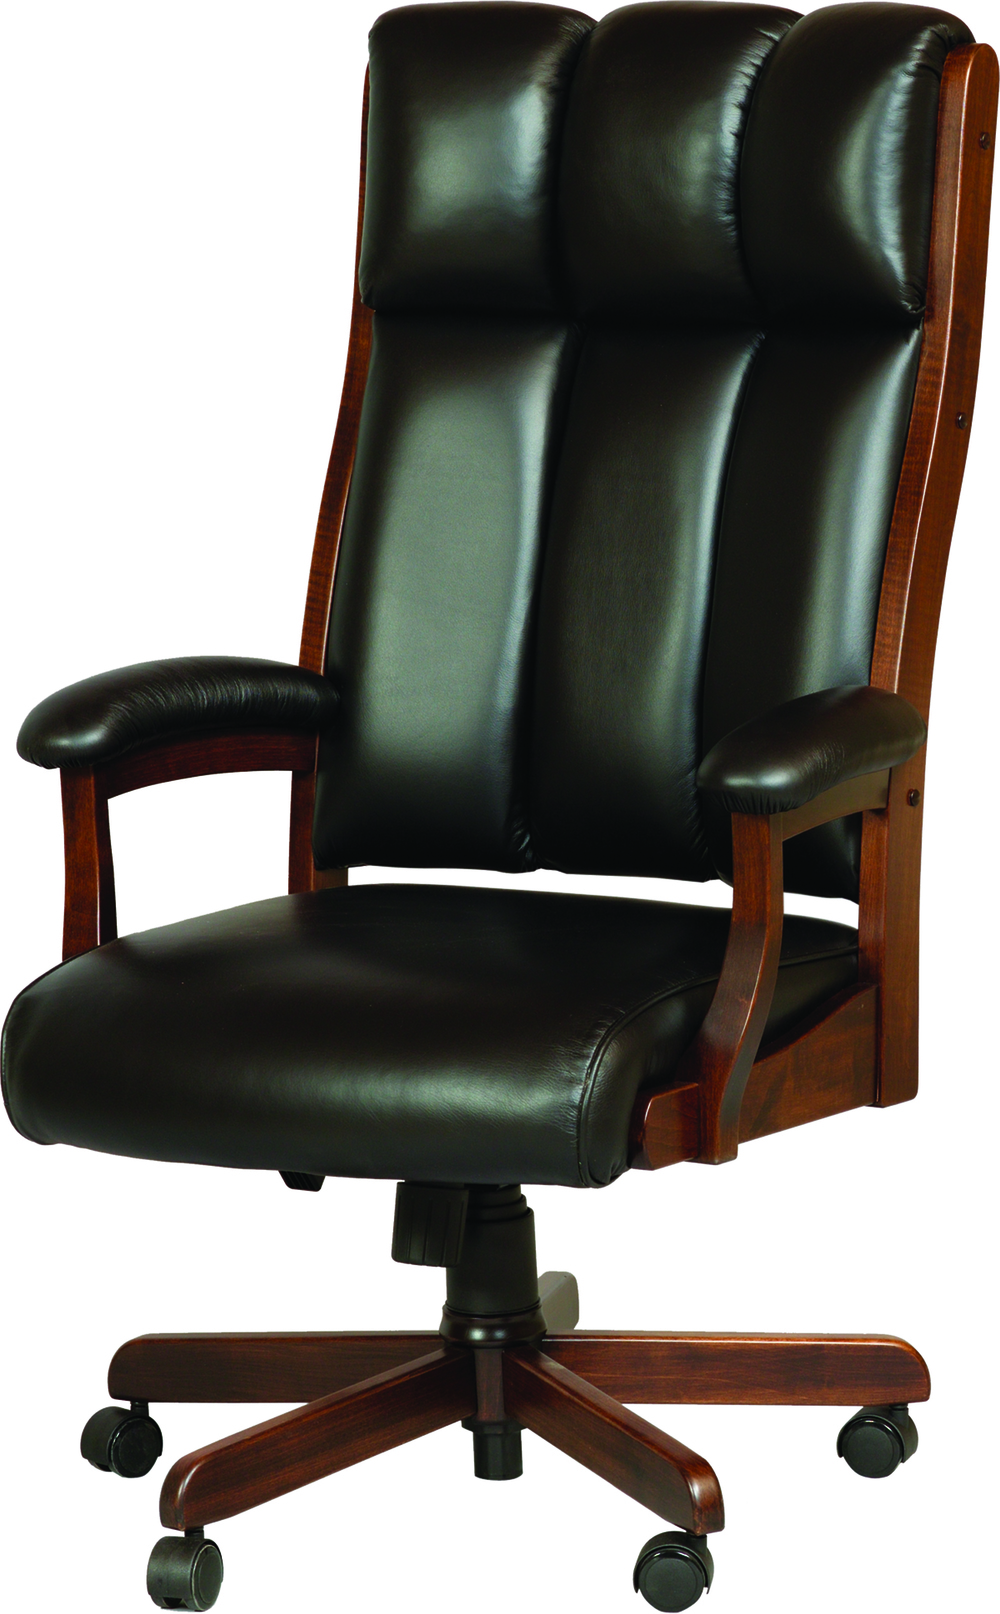 Clark Executive Chair with gas lift